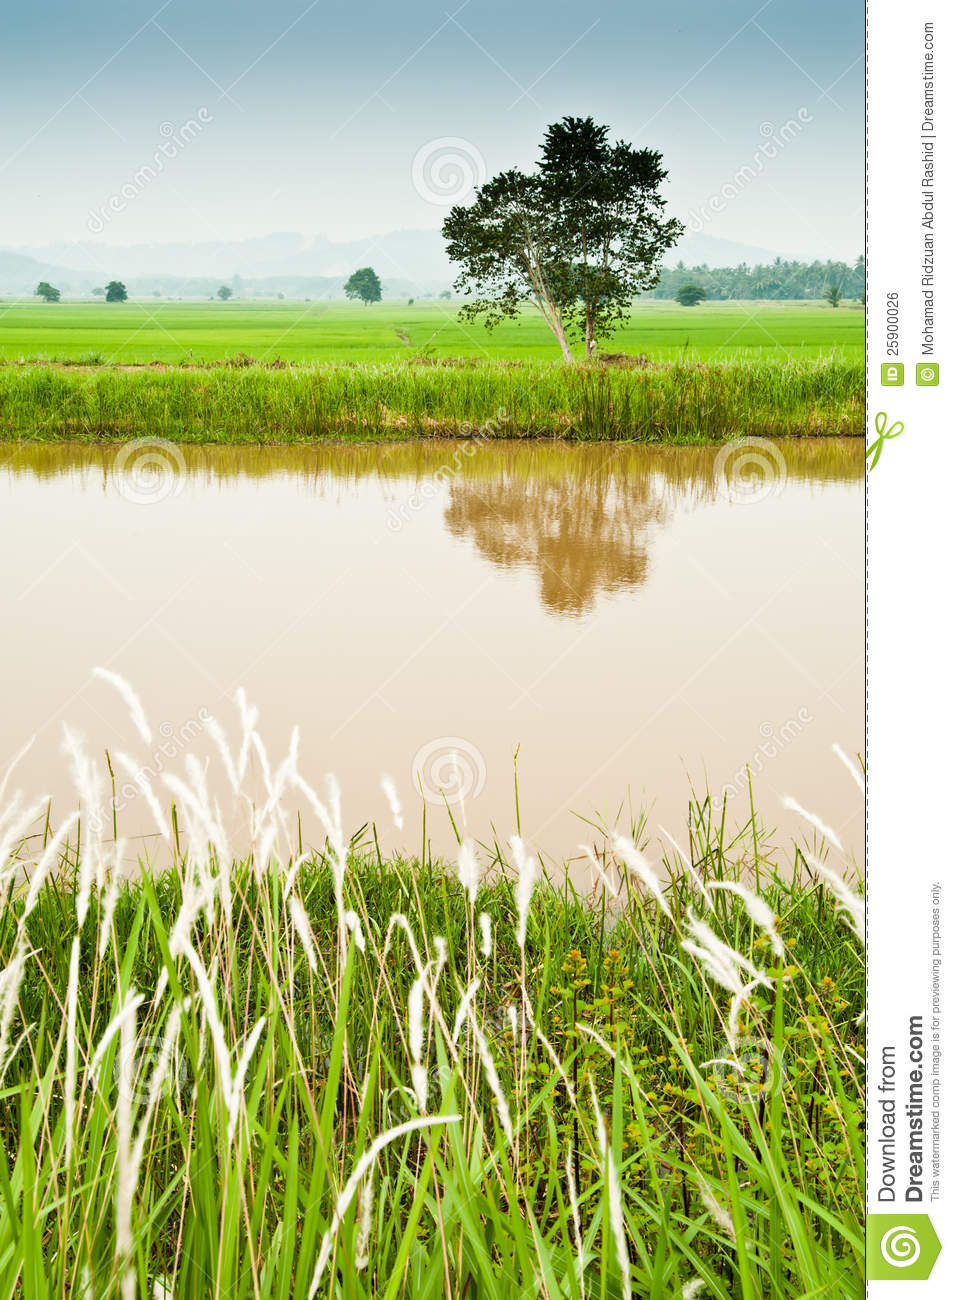 padi field and water canal stock photo image of agronomy 25900026 dreamstime com